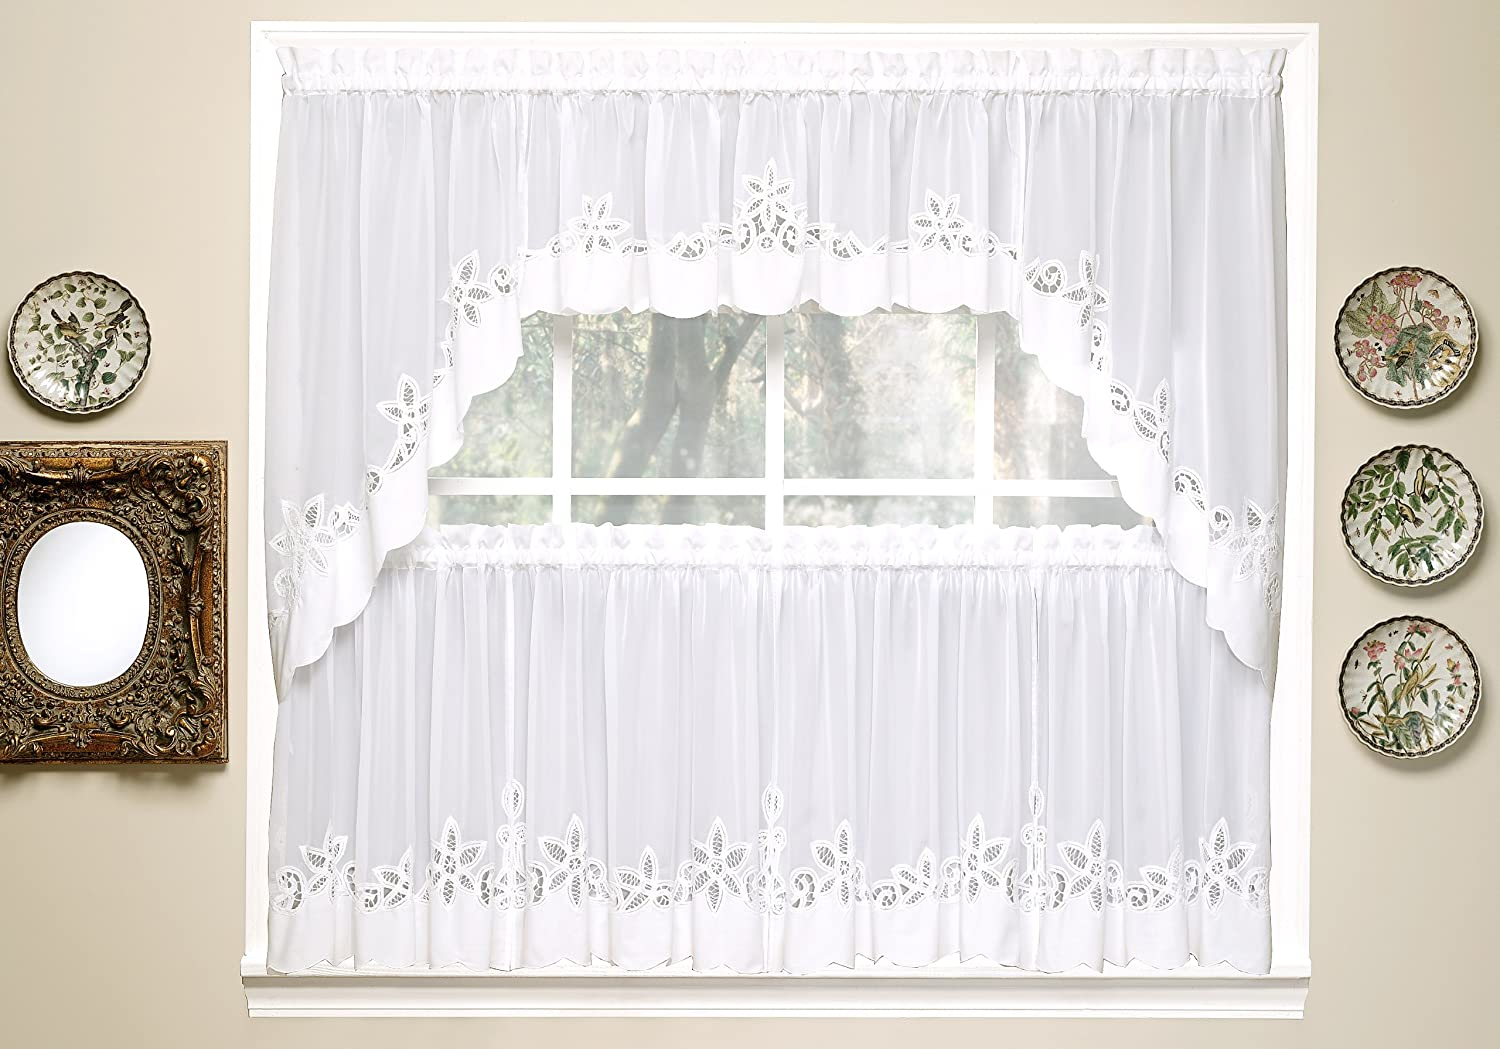 24 Inch Todays Curtain Plymouth Classic Battenburg Applique Sheer Window Tier White Home Decor Tiers Swags Valances